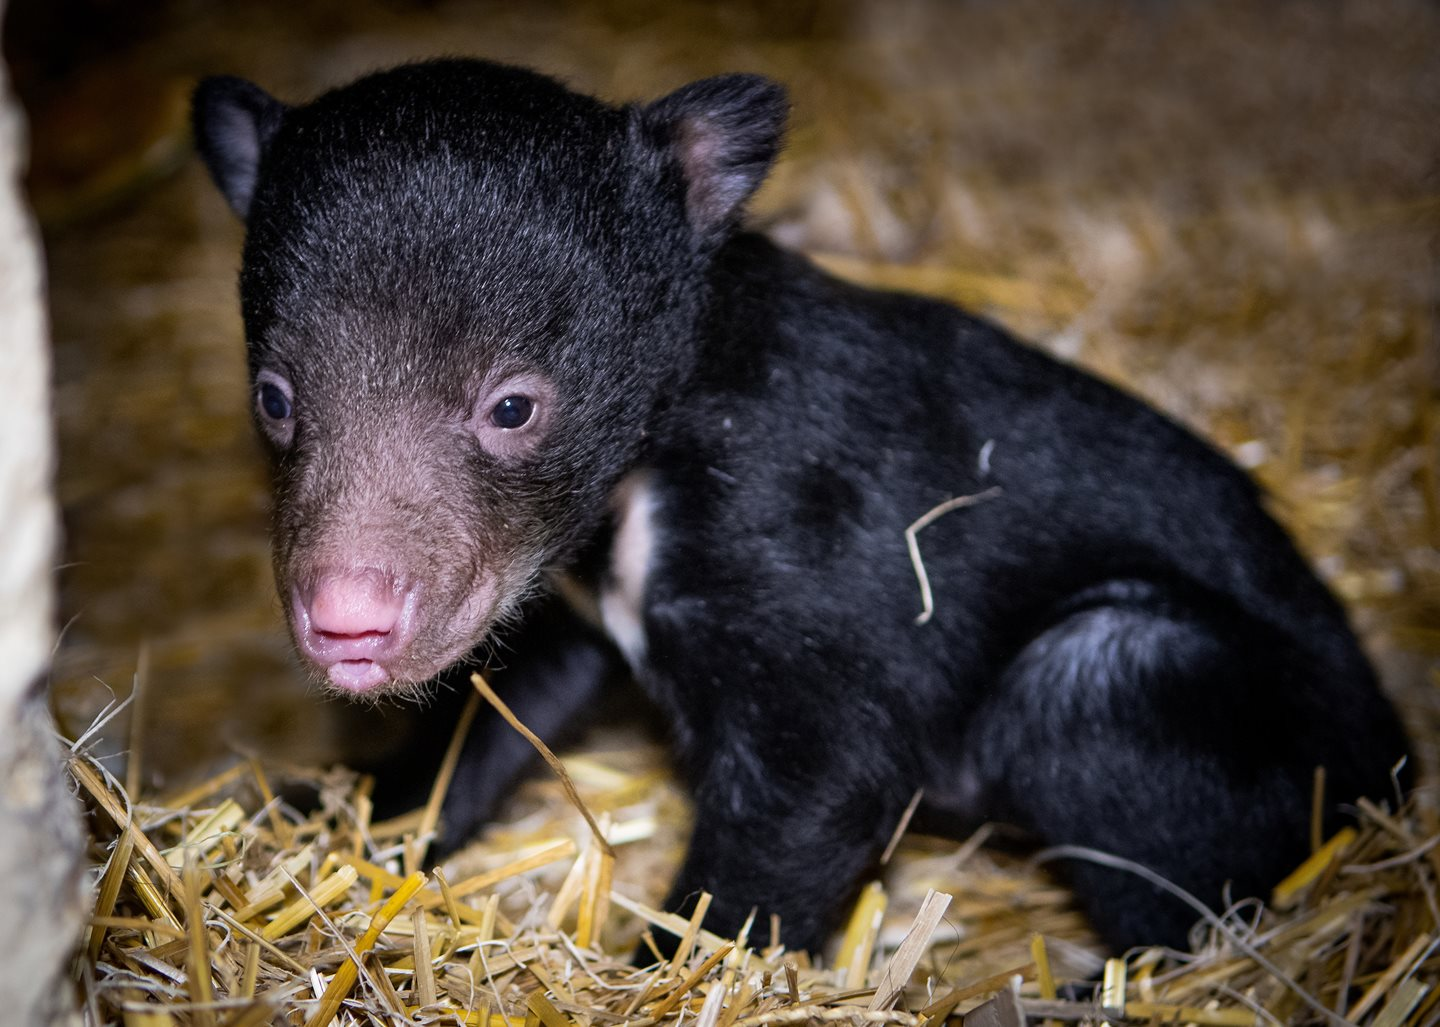 Cleveland Metroparks Zoo Announces Birth of Sloth Bear Cub